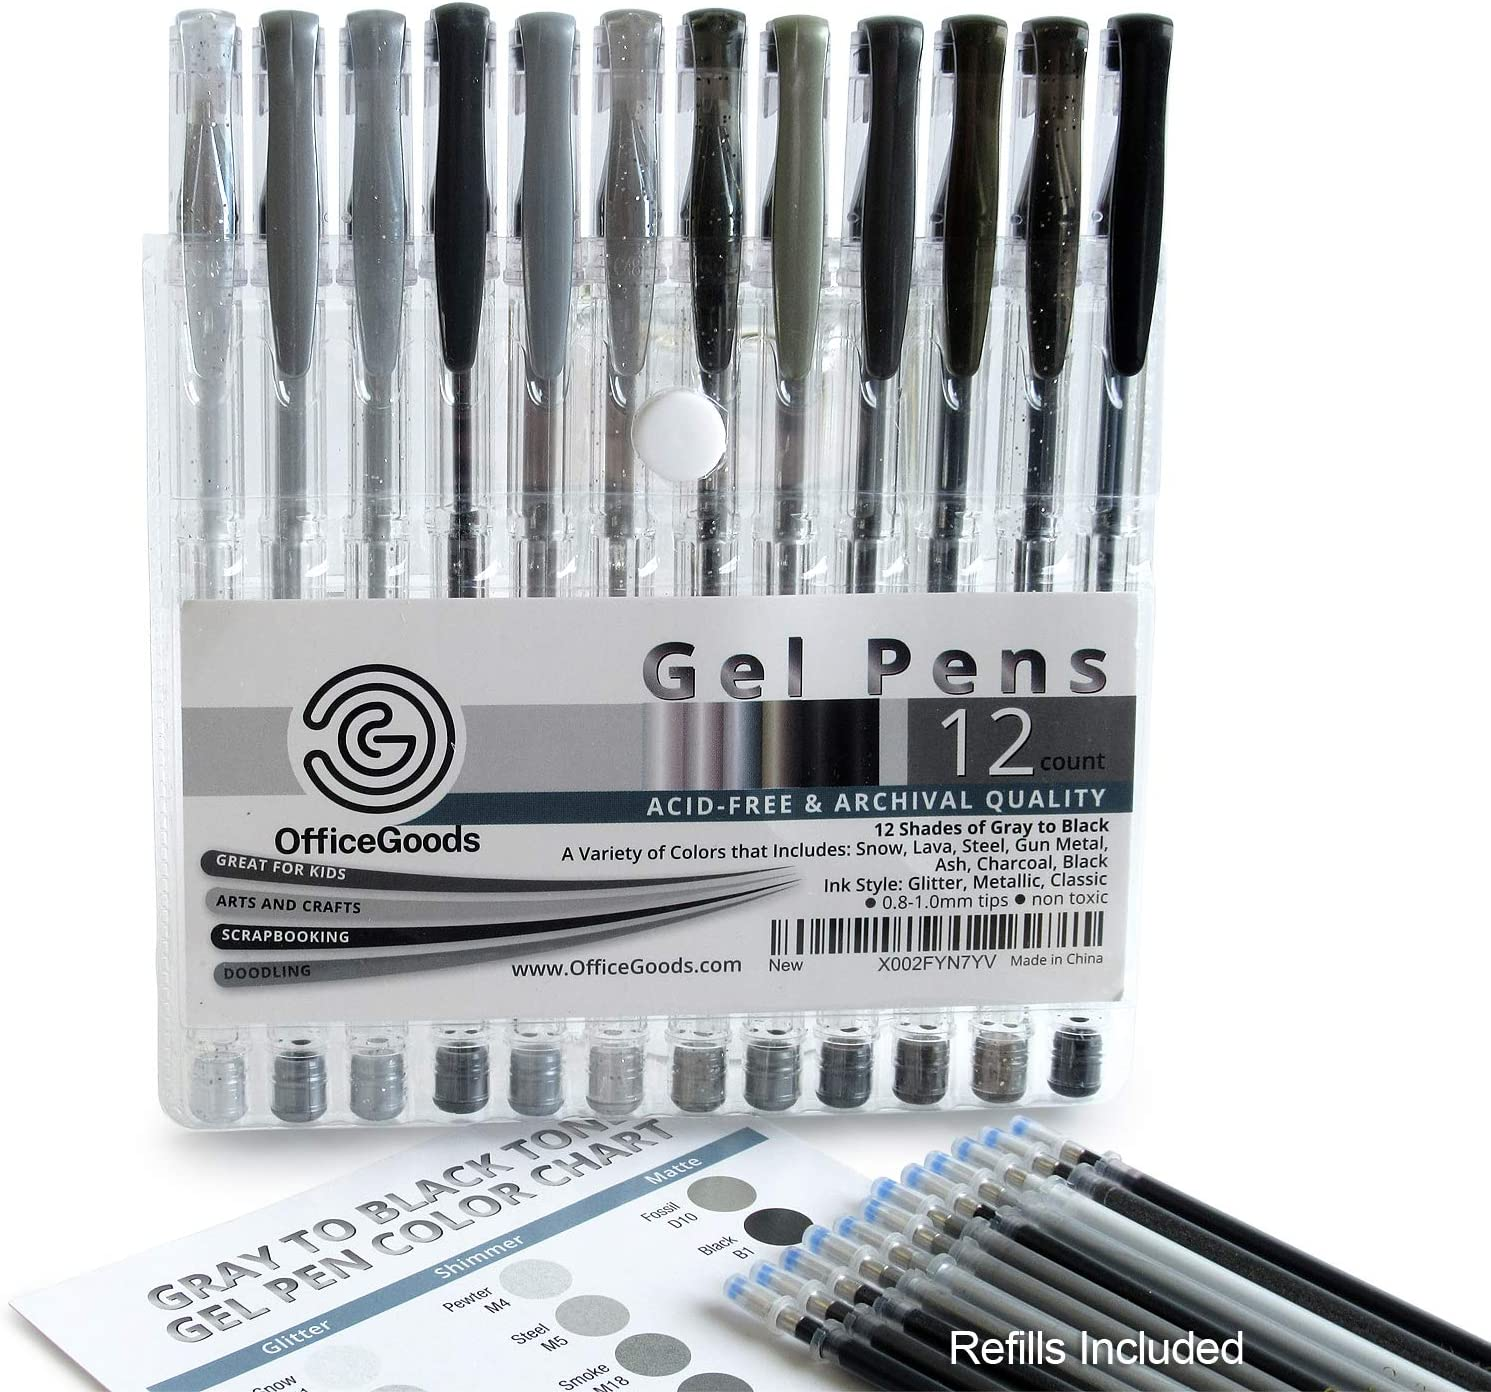 OfficeGoods Gray & Black Gel Pen Set with 12 Premium Shades of Color - Plus a Full Set of Refills = 24. Perfect for Kids, Doodling & Adult Coloring – Glitter, Metallic & Classic